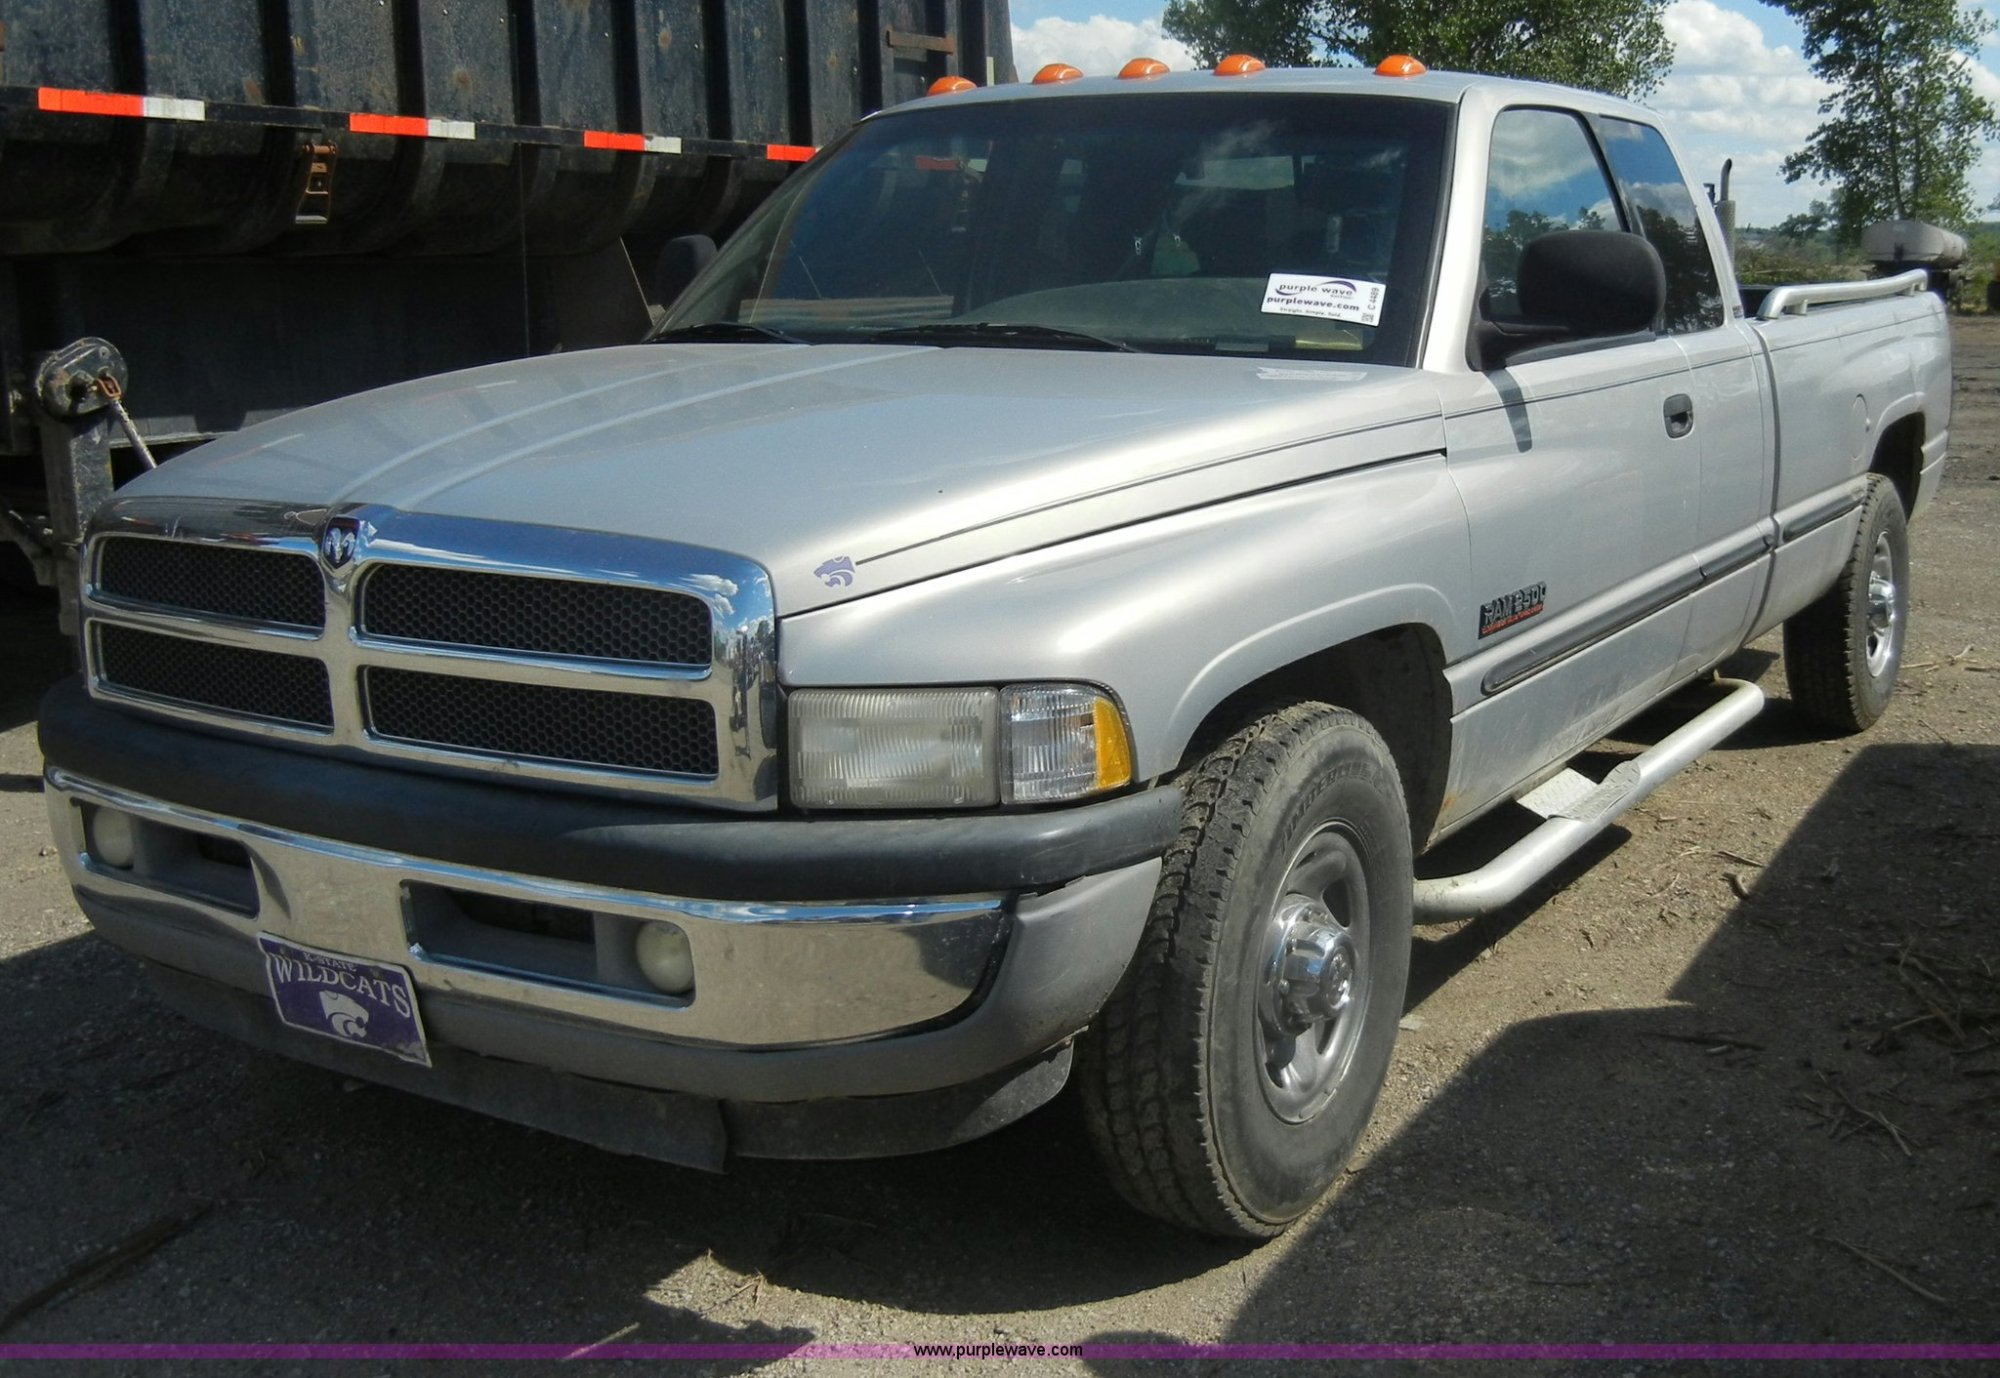 hight resolution of 1999 dodge ram 2500 laramie slt quad cab pickup truck 1999 dodge ram 2500 4x4 1997